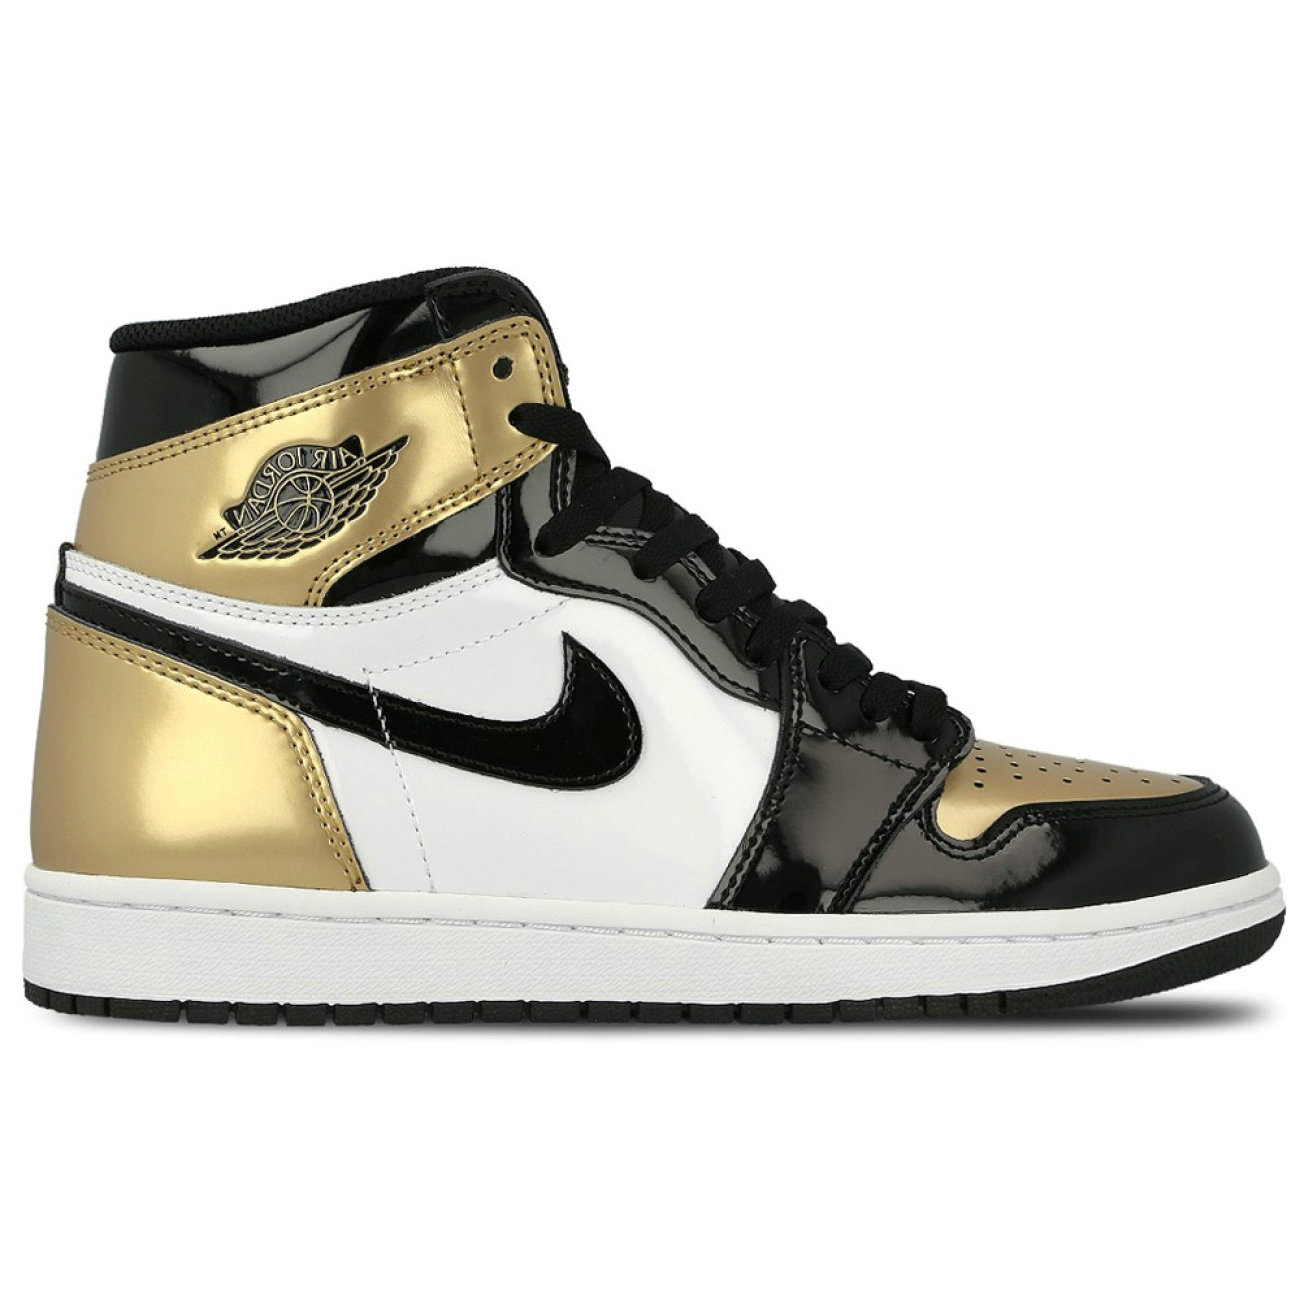 Air Jordan 1 Retro High OG NRG Gold Toe